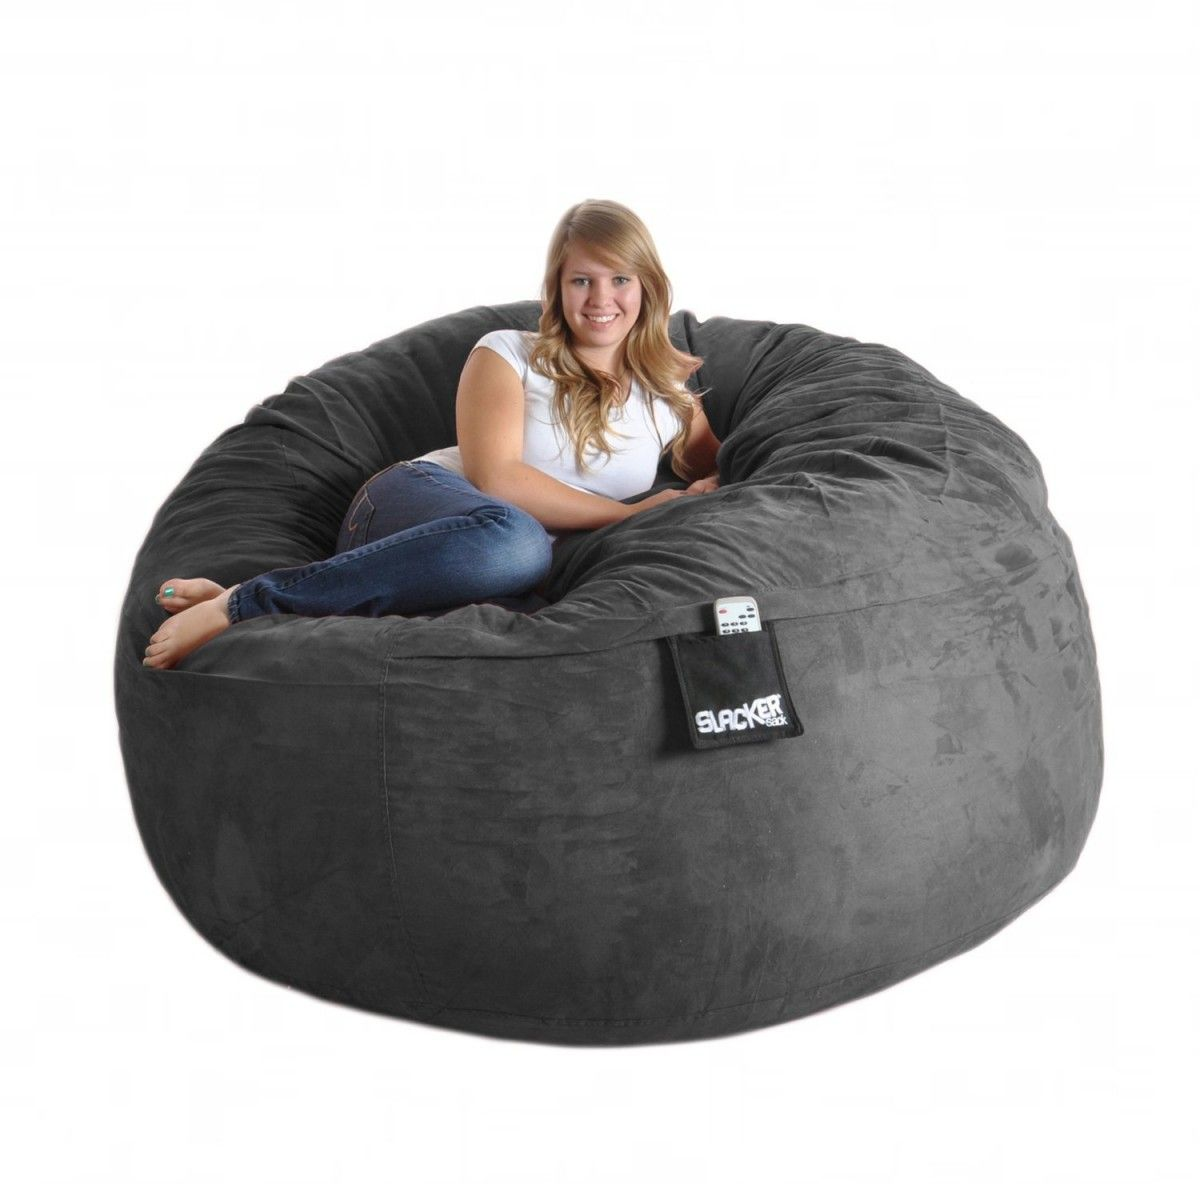 Giant bean bag chairs for adults - Making Oversized Bean Bag Chairs Foam Padding Http Www Mybarnacles